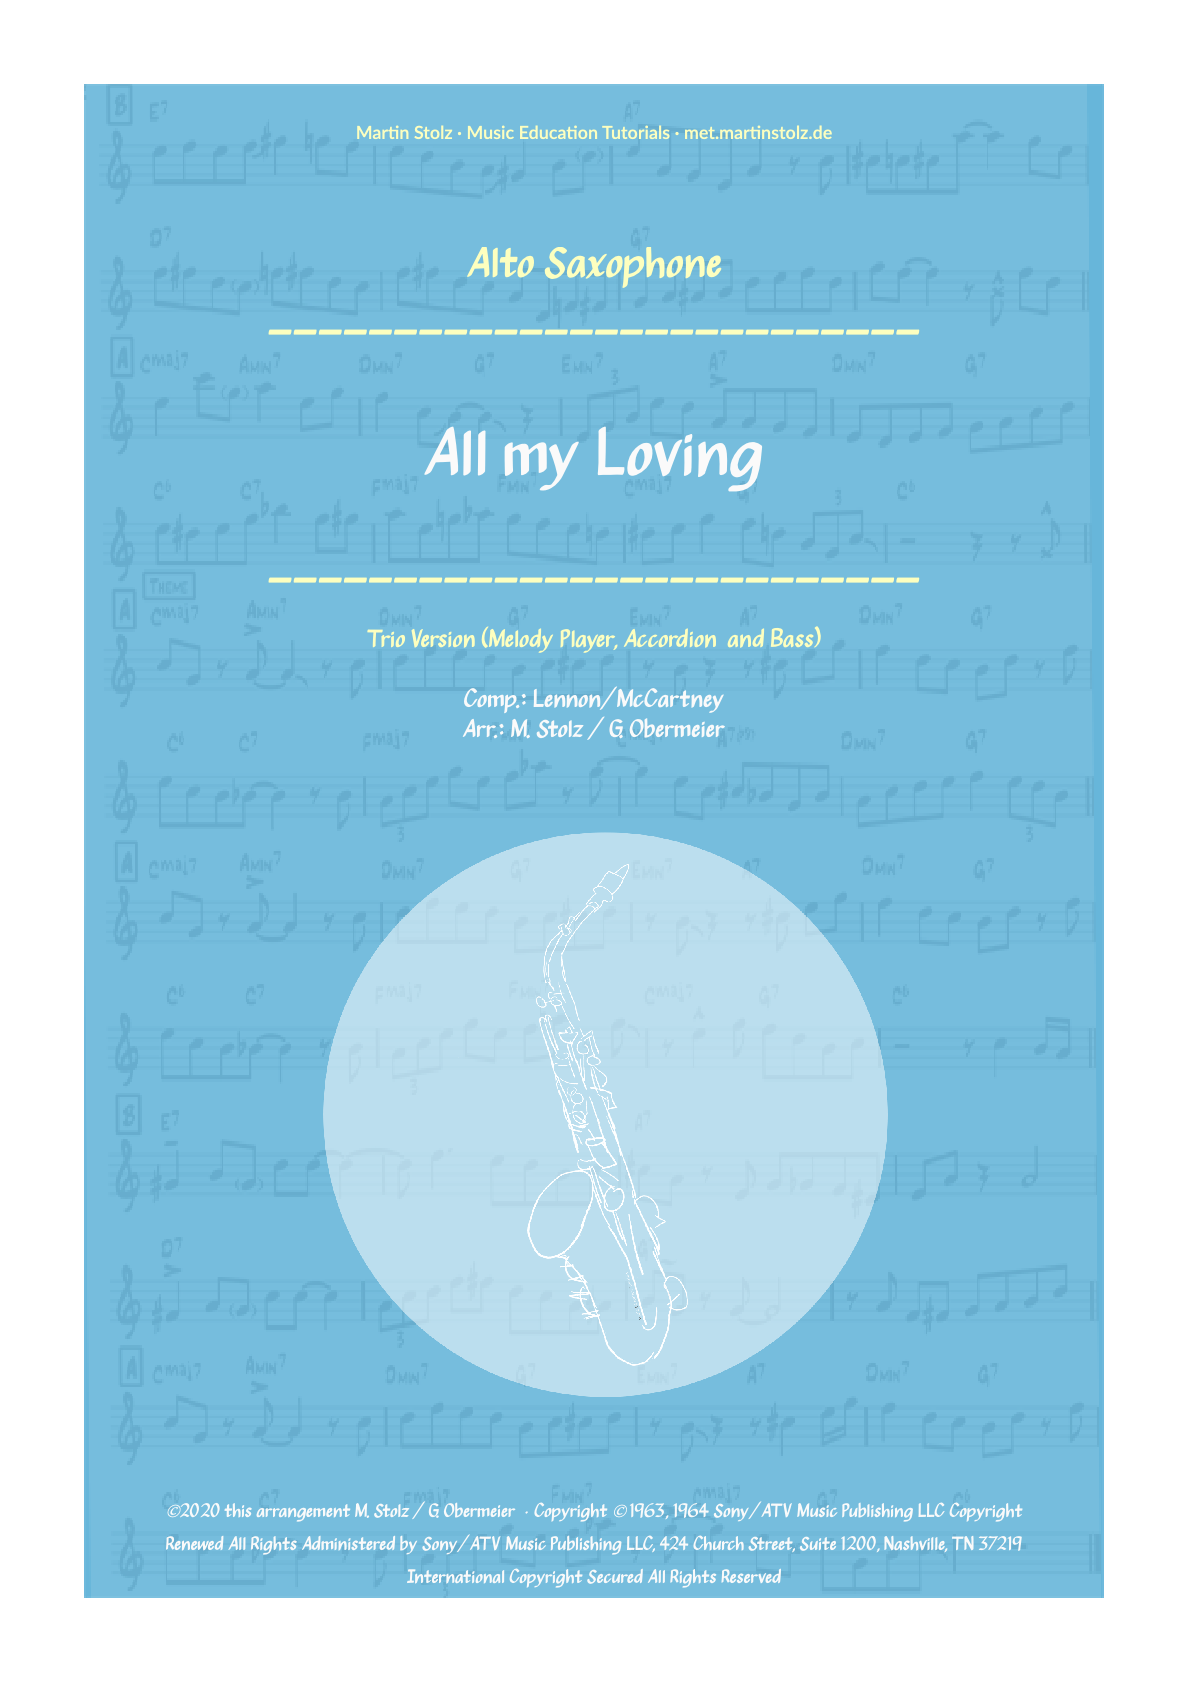 """All my Loving"" for Alto Saxophone · Swing Version for Alto Sax, Accordion and Bass"